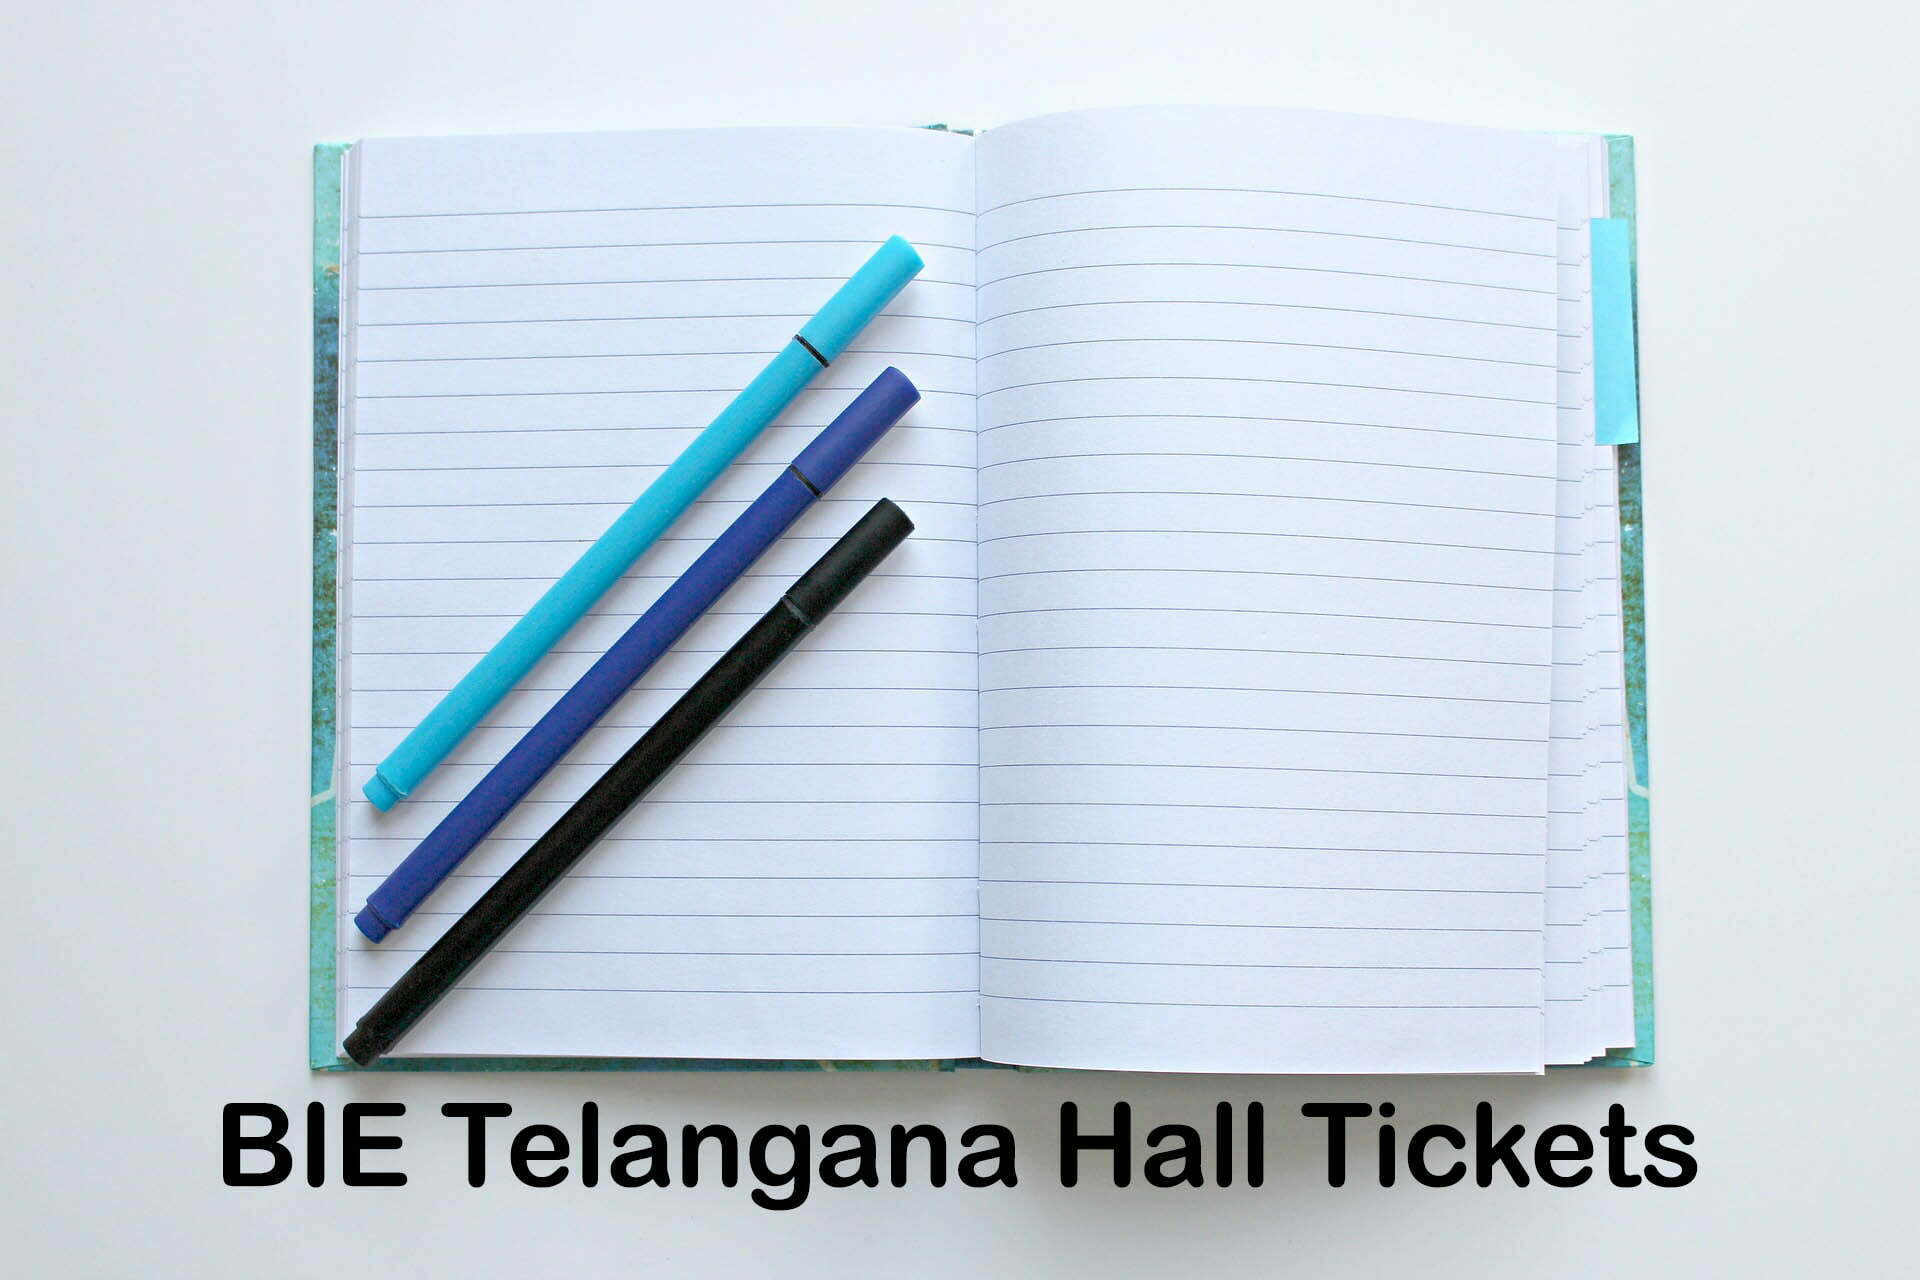 BIE Telangana Hall Tickets